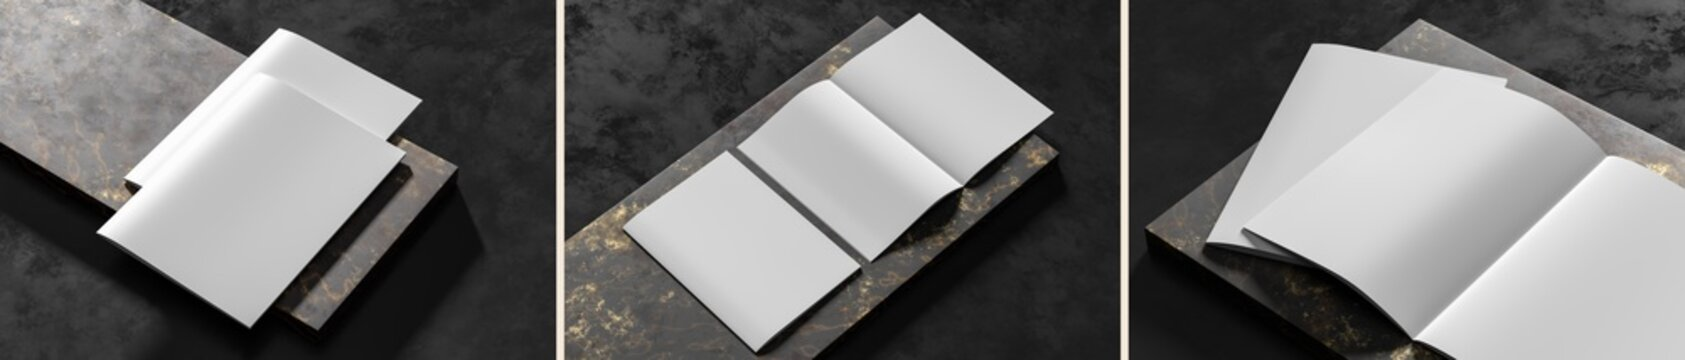 Realistic magazine or catalog mock up on dark granite background. Blank soft cover magazine mockups rendered with three different variations. 3D illustration.